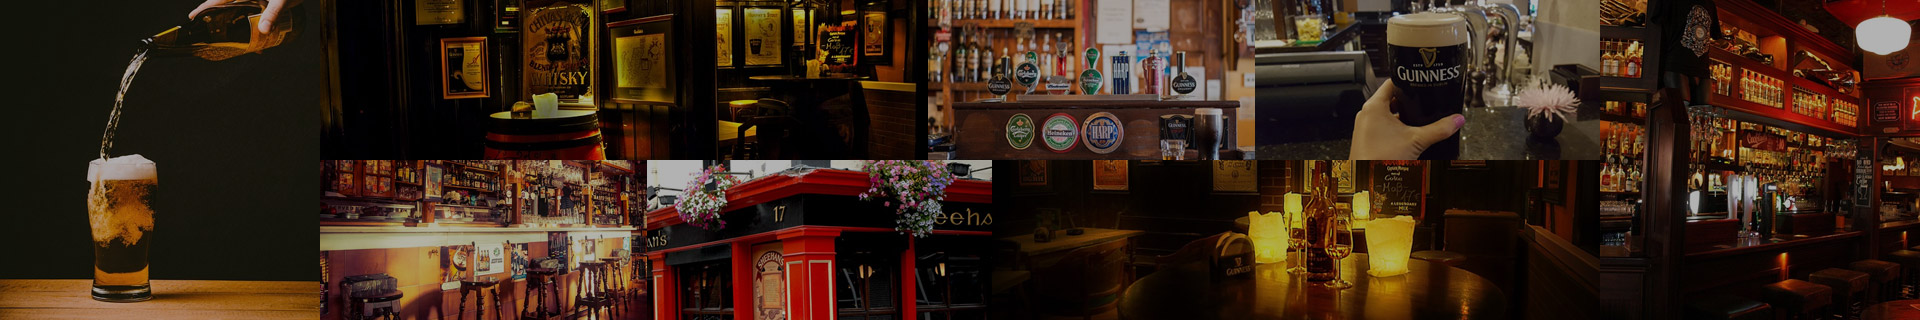 home_bar2_pic1